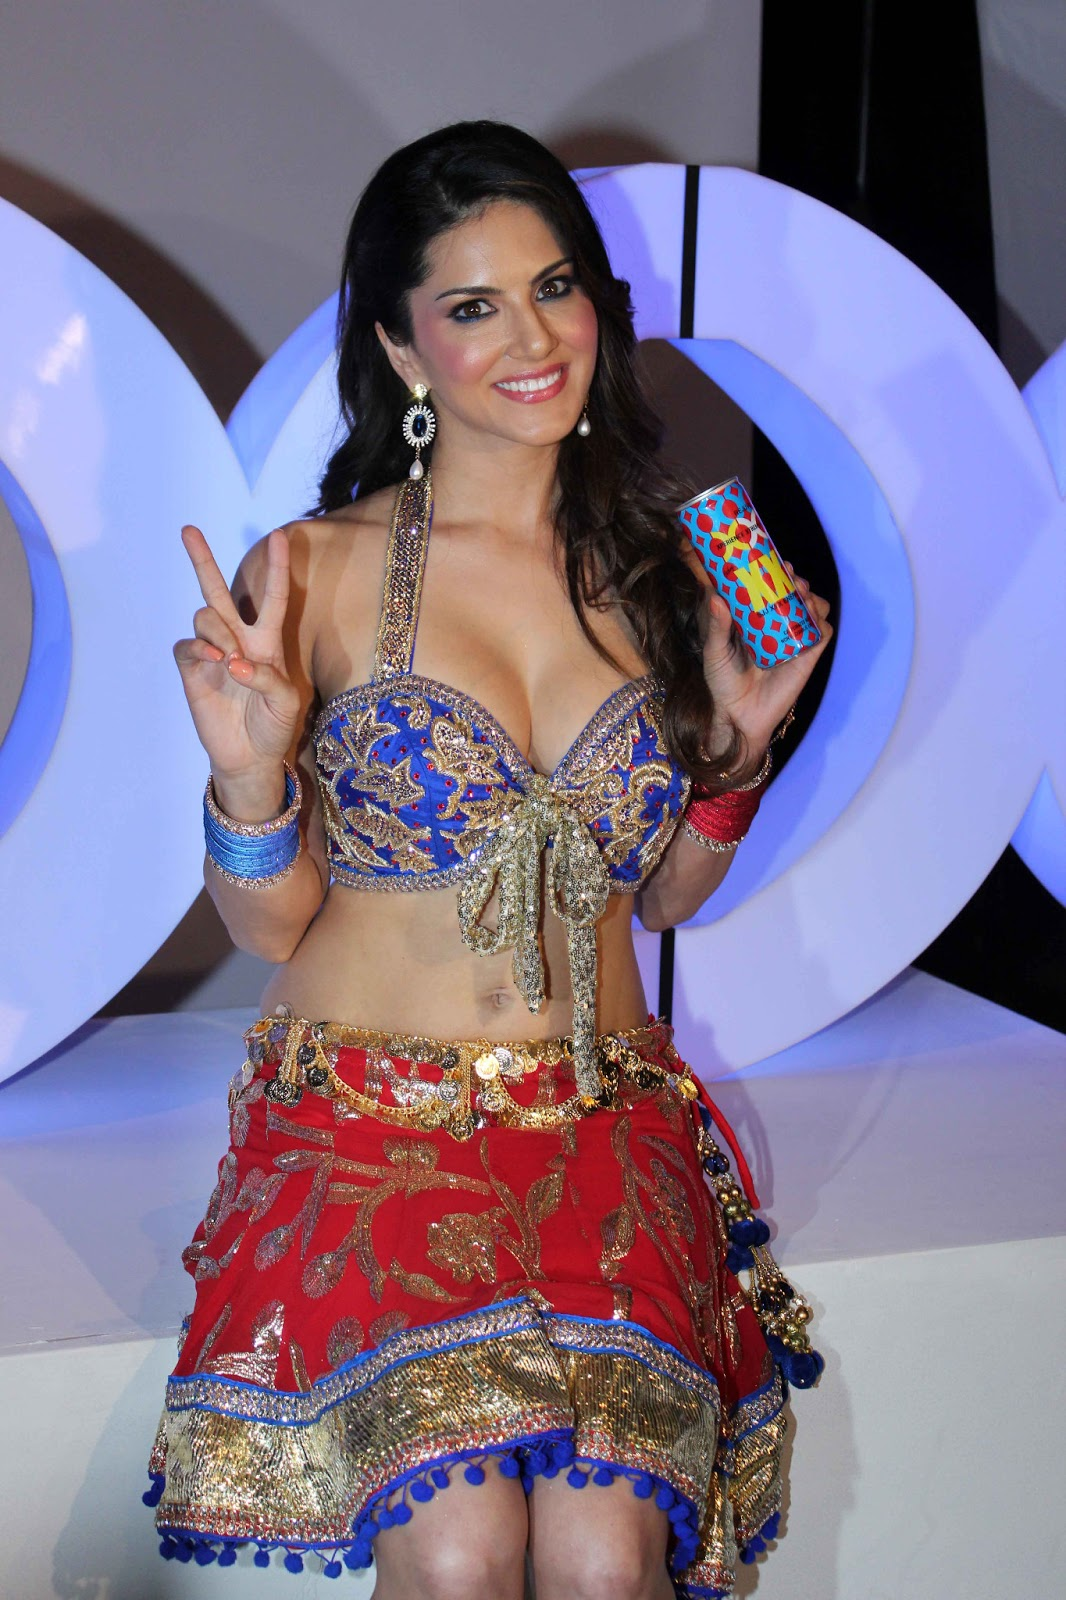 http://1.bp.blogspot.com/-Mw4XUYuBY8Q/UXAgG6GP9gI/AAAAAAAAOgg/qiwre-W9H1g/s1600/Sunny-Leone-Hot-Photo-Shoot-for-XXX-Energy-Drink-27.JPG